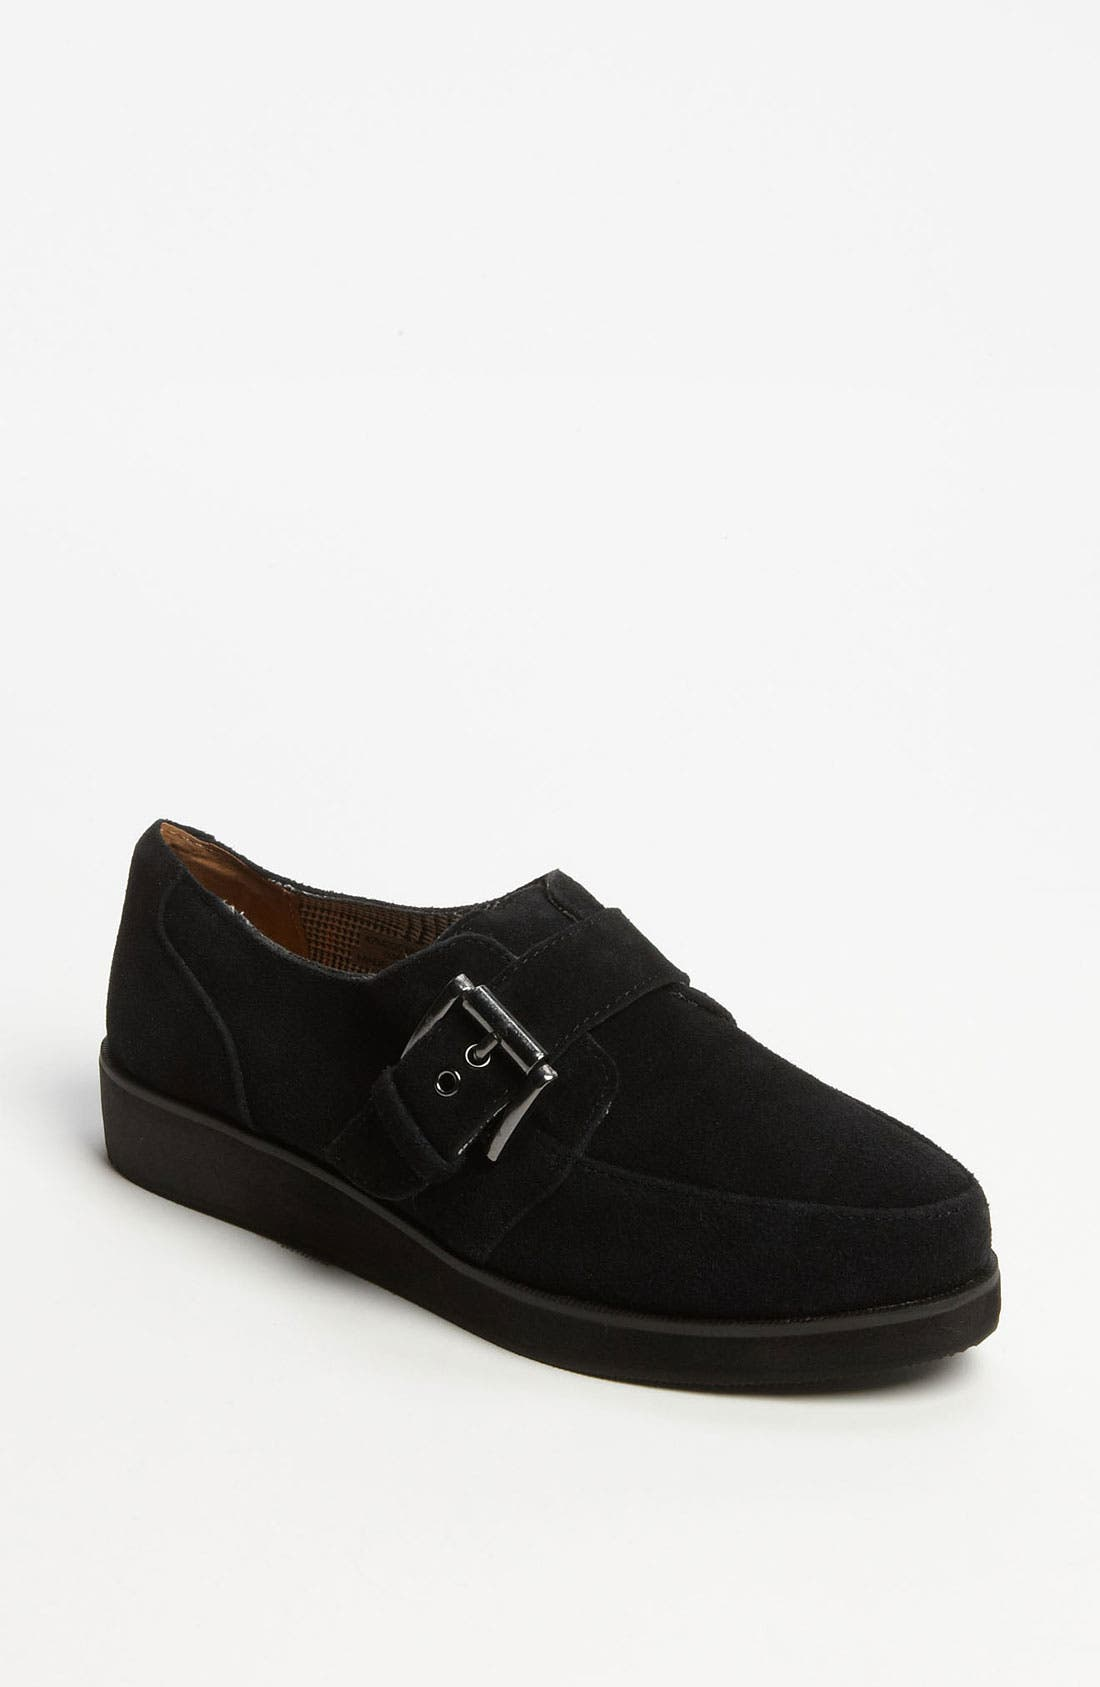 Alternate Image 1 Selected - Topshop 'Mono' Monk Strap Creeper